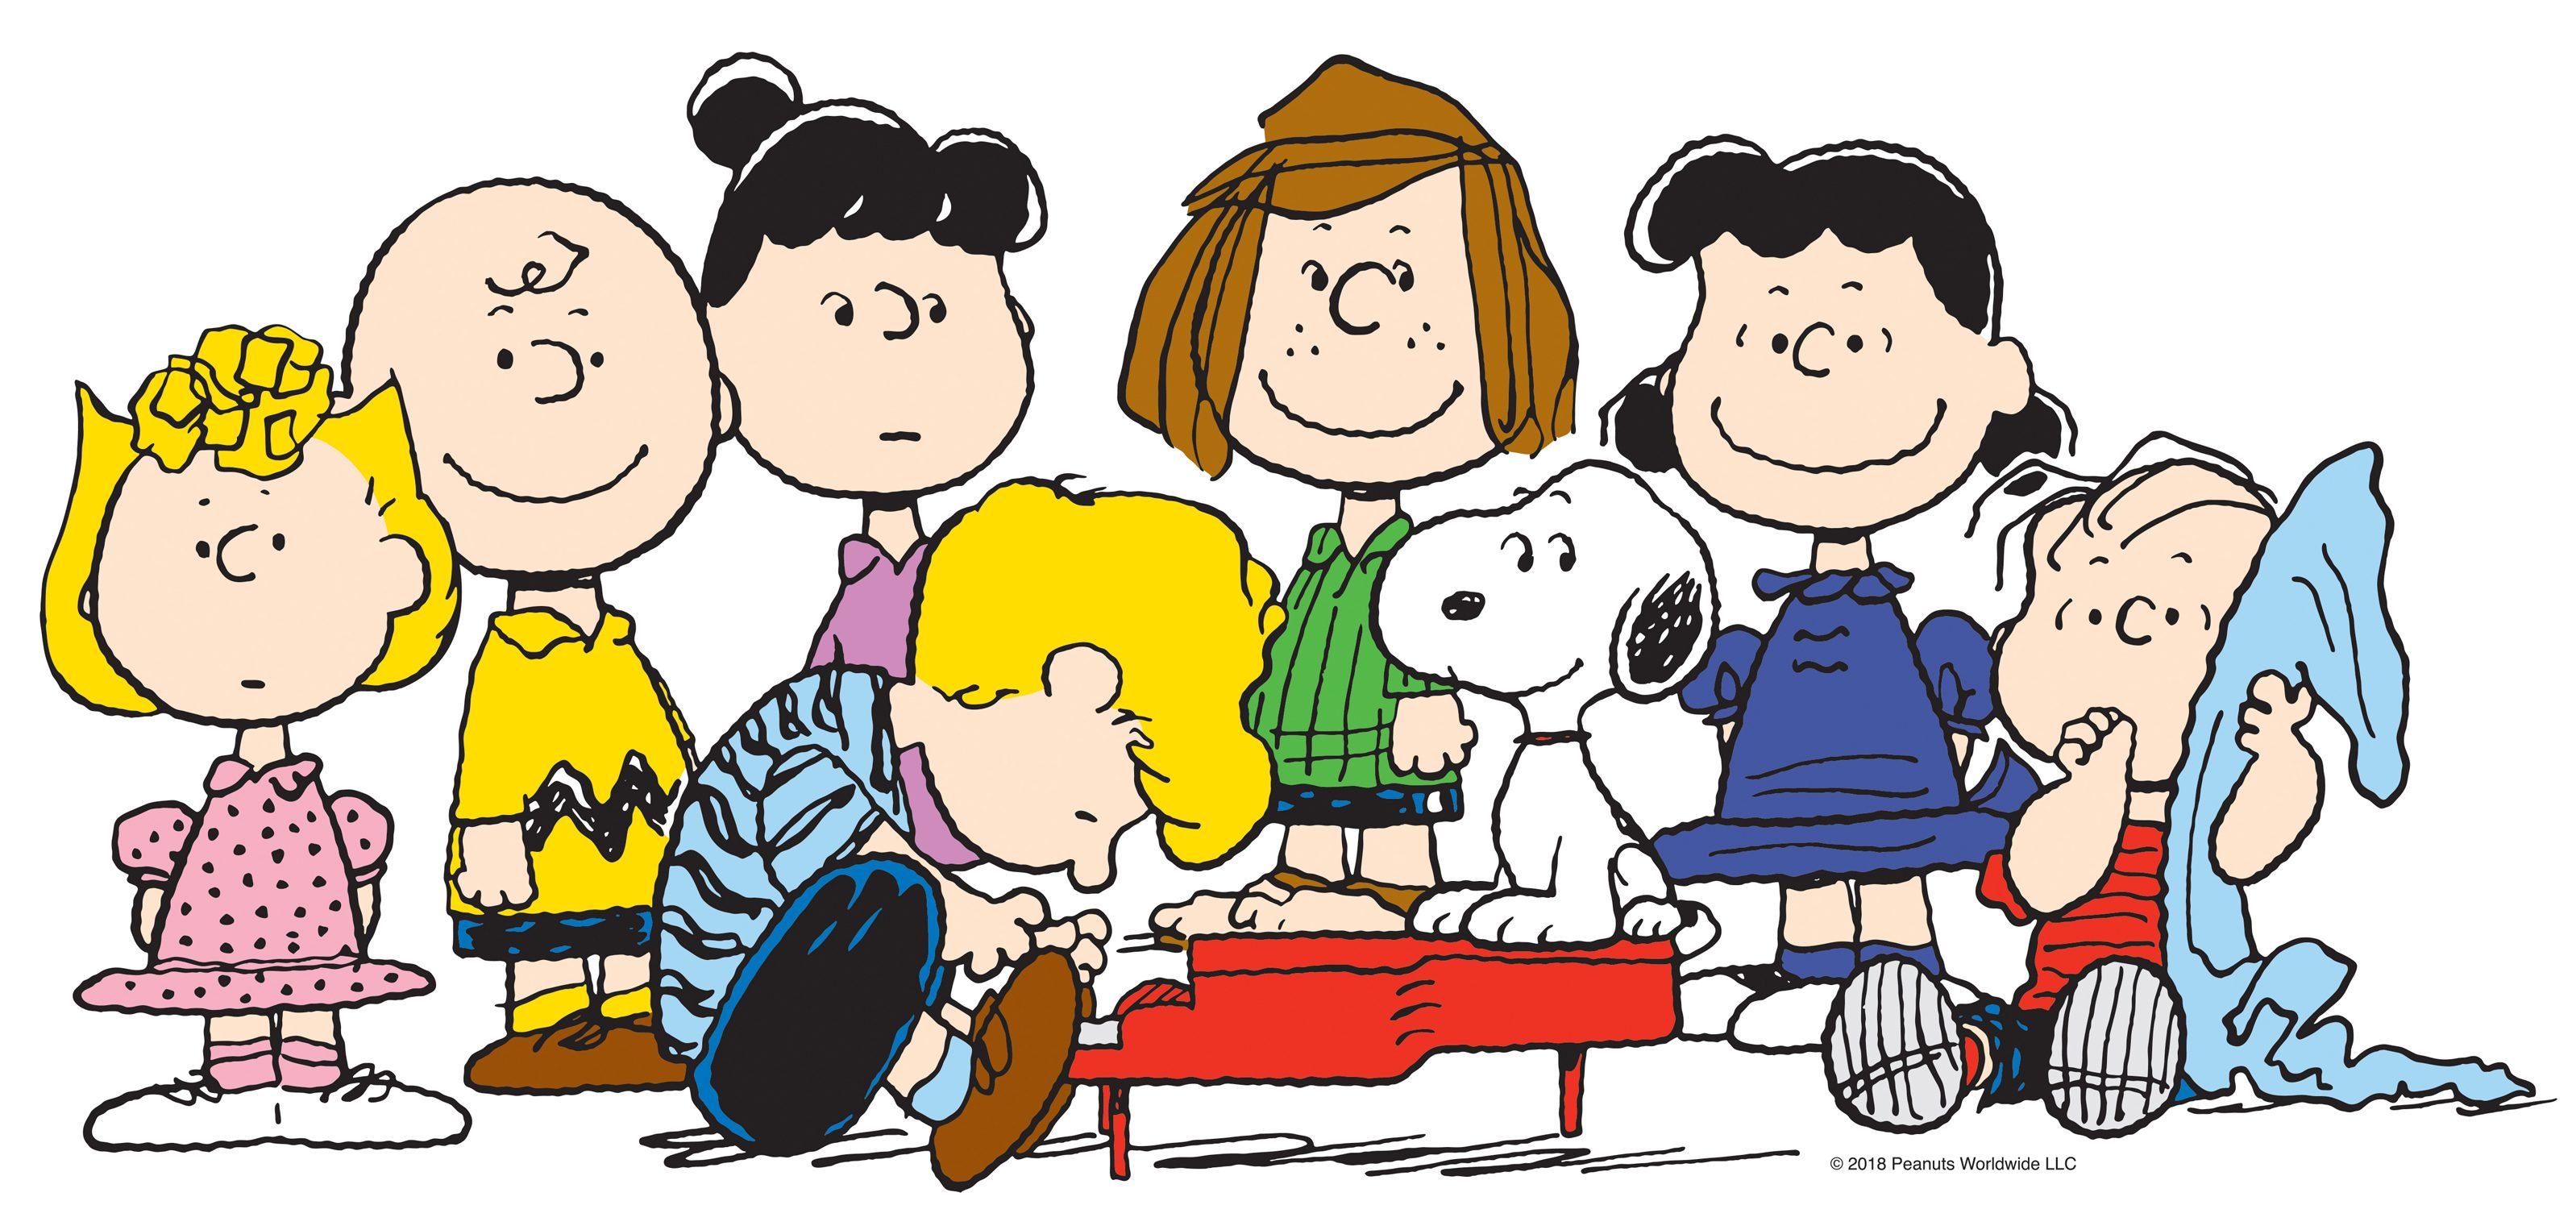 apple has reportedly cut a deal with dhx media to produce new animated peanuts content deadline reported friday thats right snoopy charlie brown and